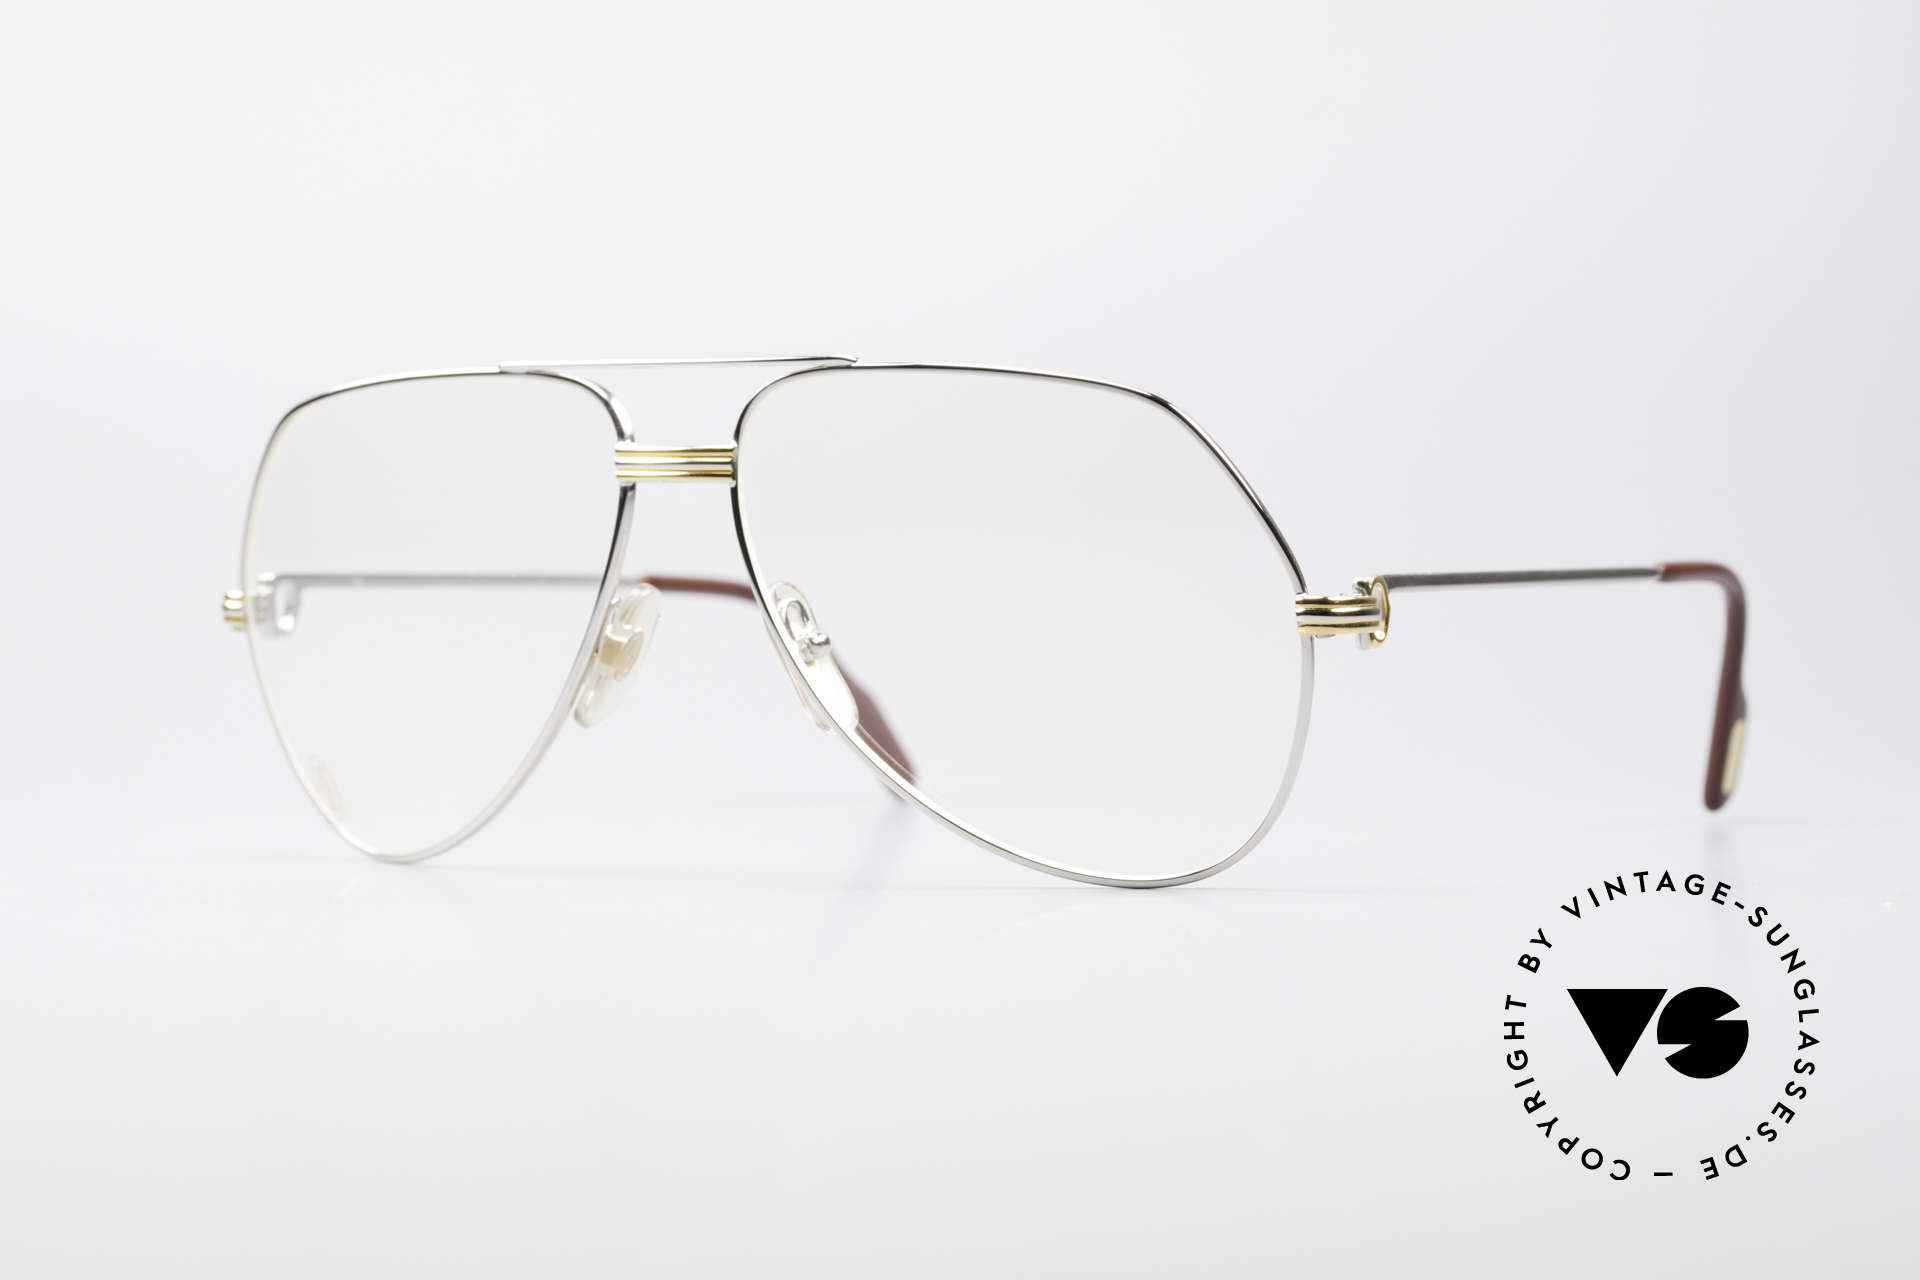 Cartier Vendome LC - L Platinum Finish Frame Luxury, Vendome = the most famous eyewear design by CARTIER, Made for Men